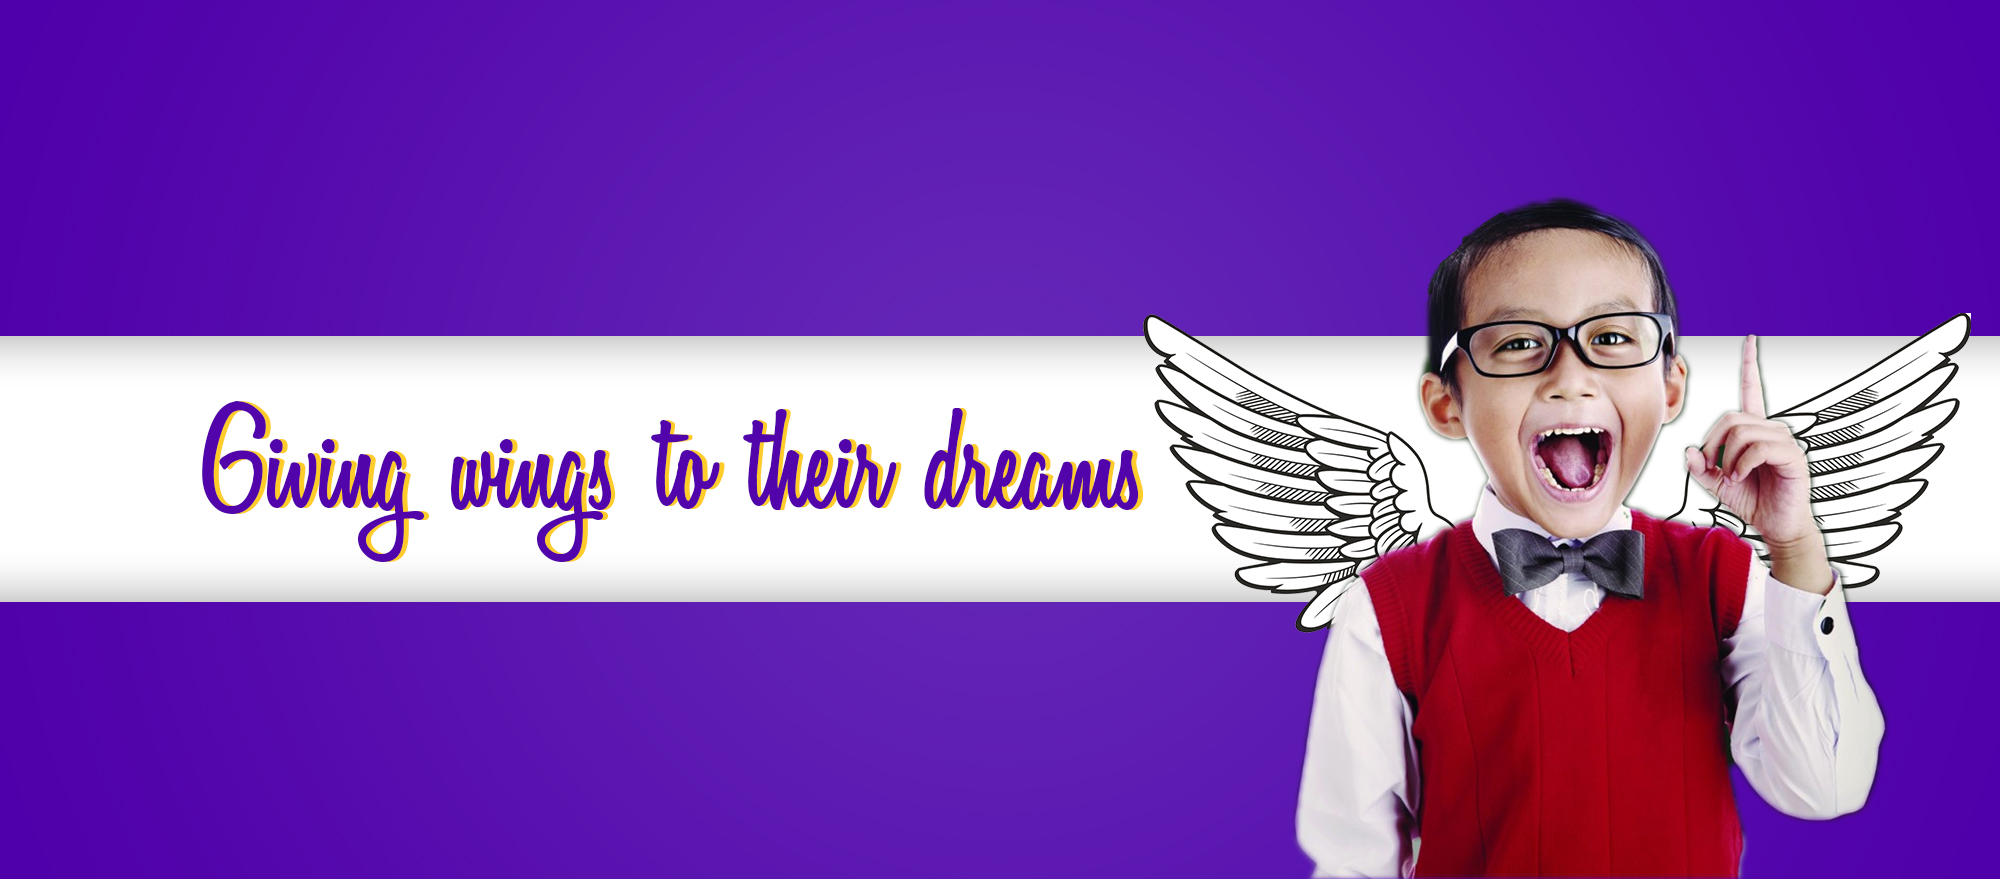 Giving Wings to their Dreams